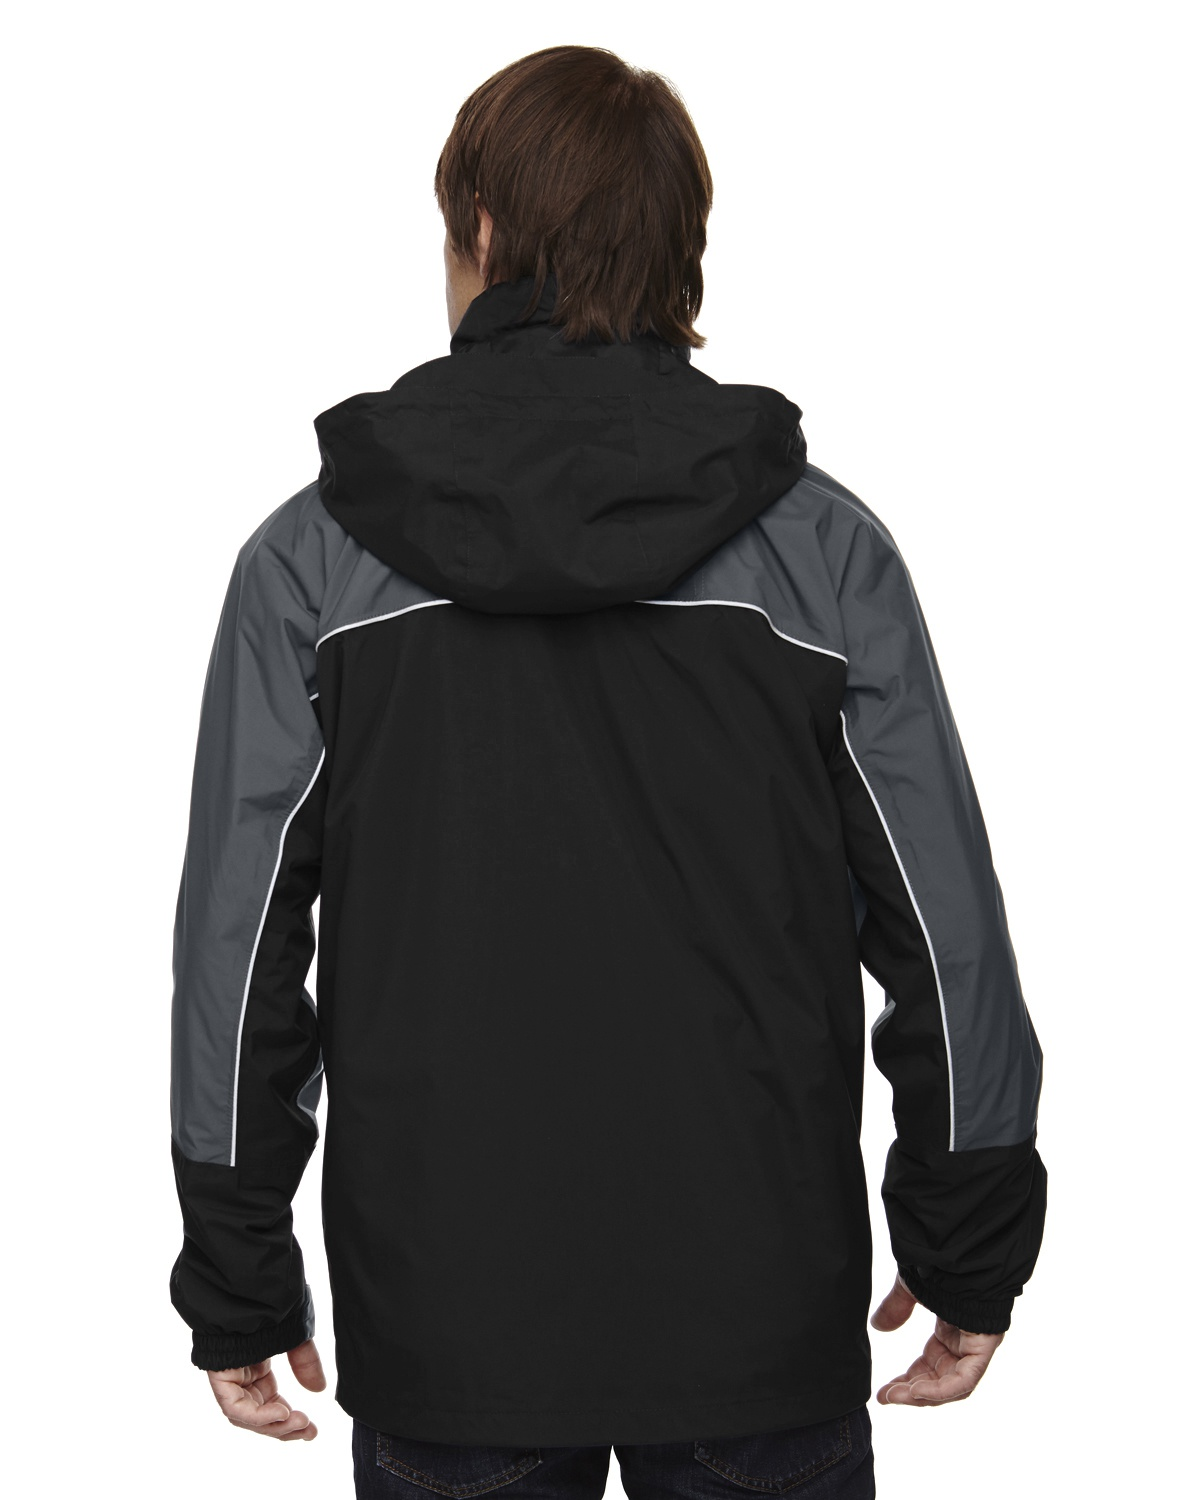 'Ash City - North End 88052 Adult 3-in-1 Seam-Sealed Mid-Length Jacket with Piping'